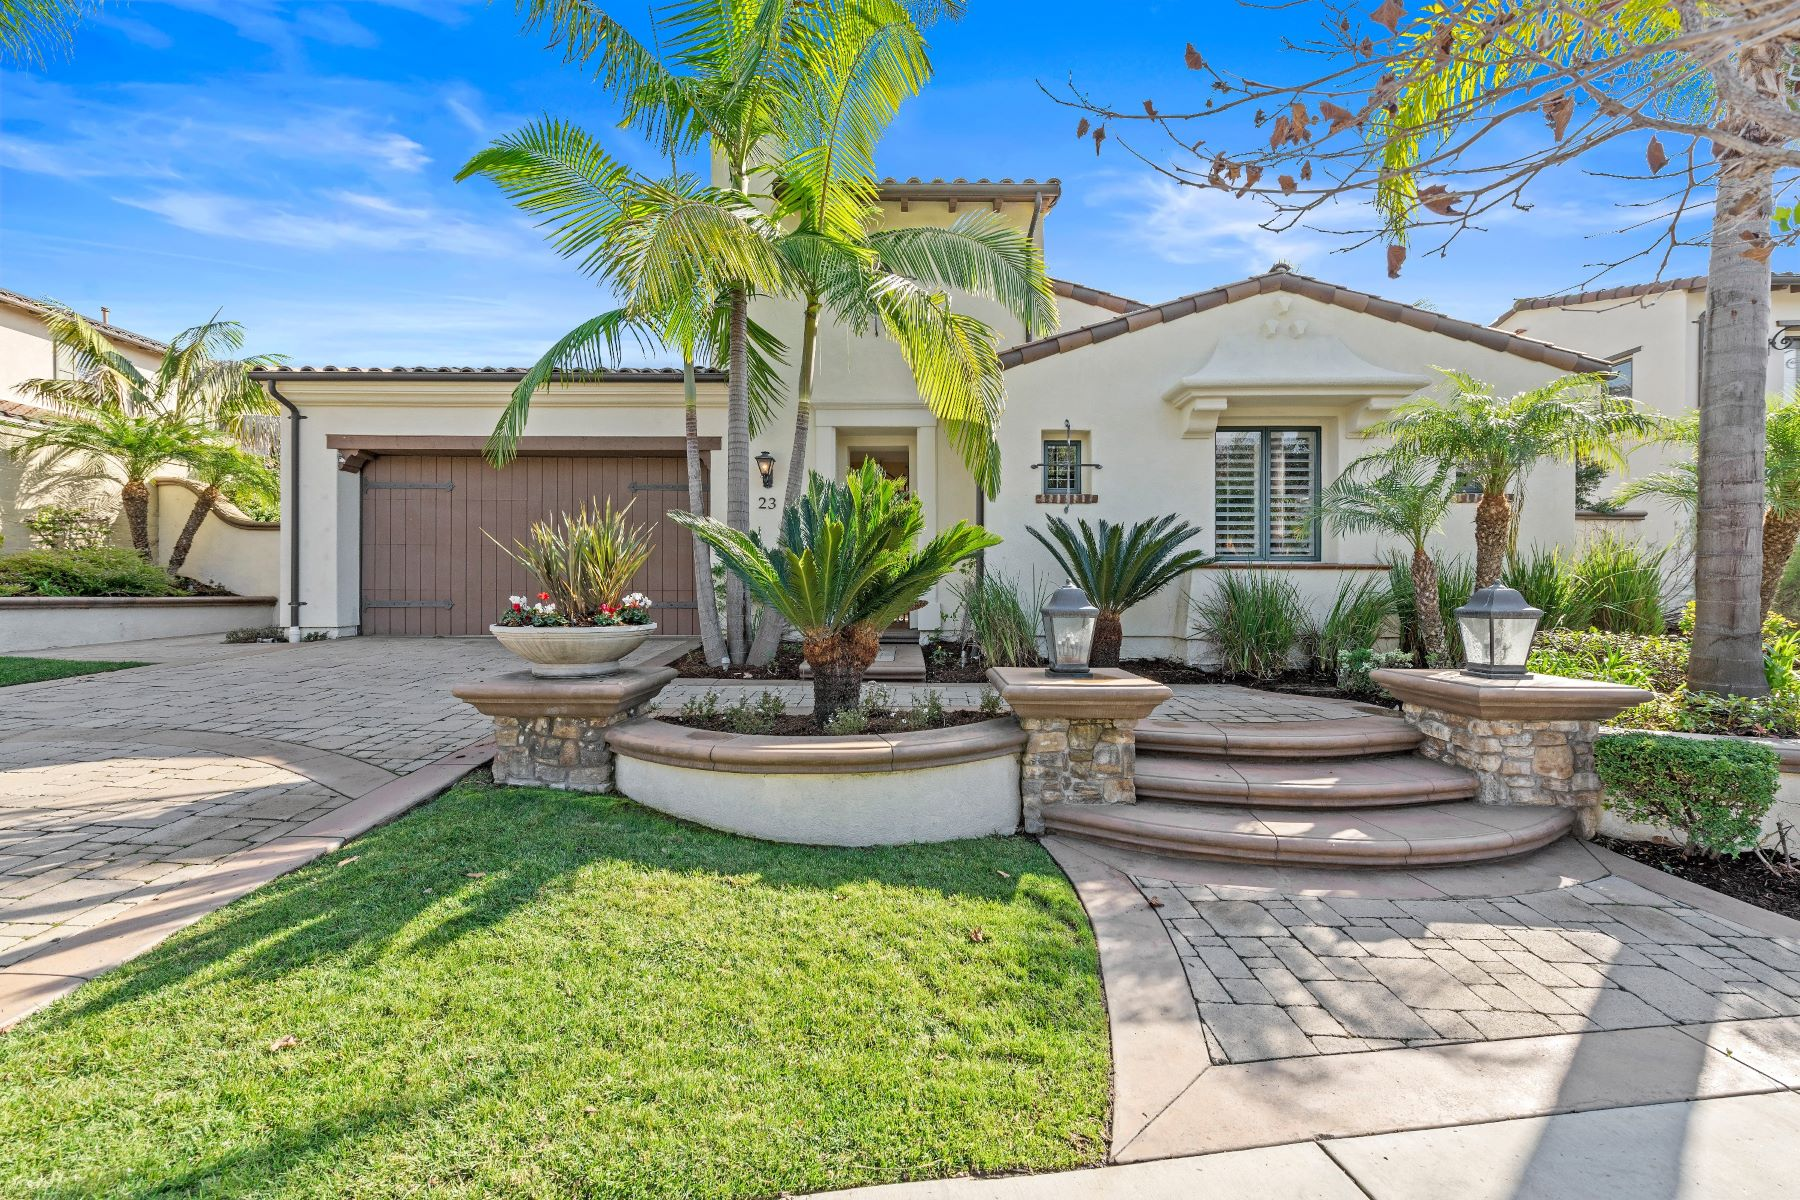 Single Family Homes for Sale at 23 Calle Careyes San Clemente, California 92673 United States